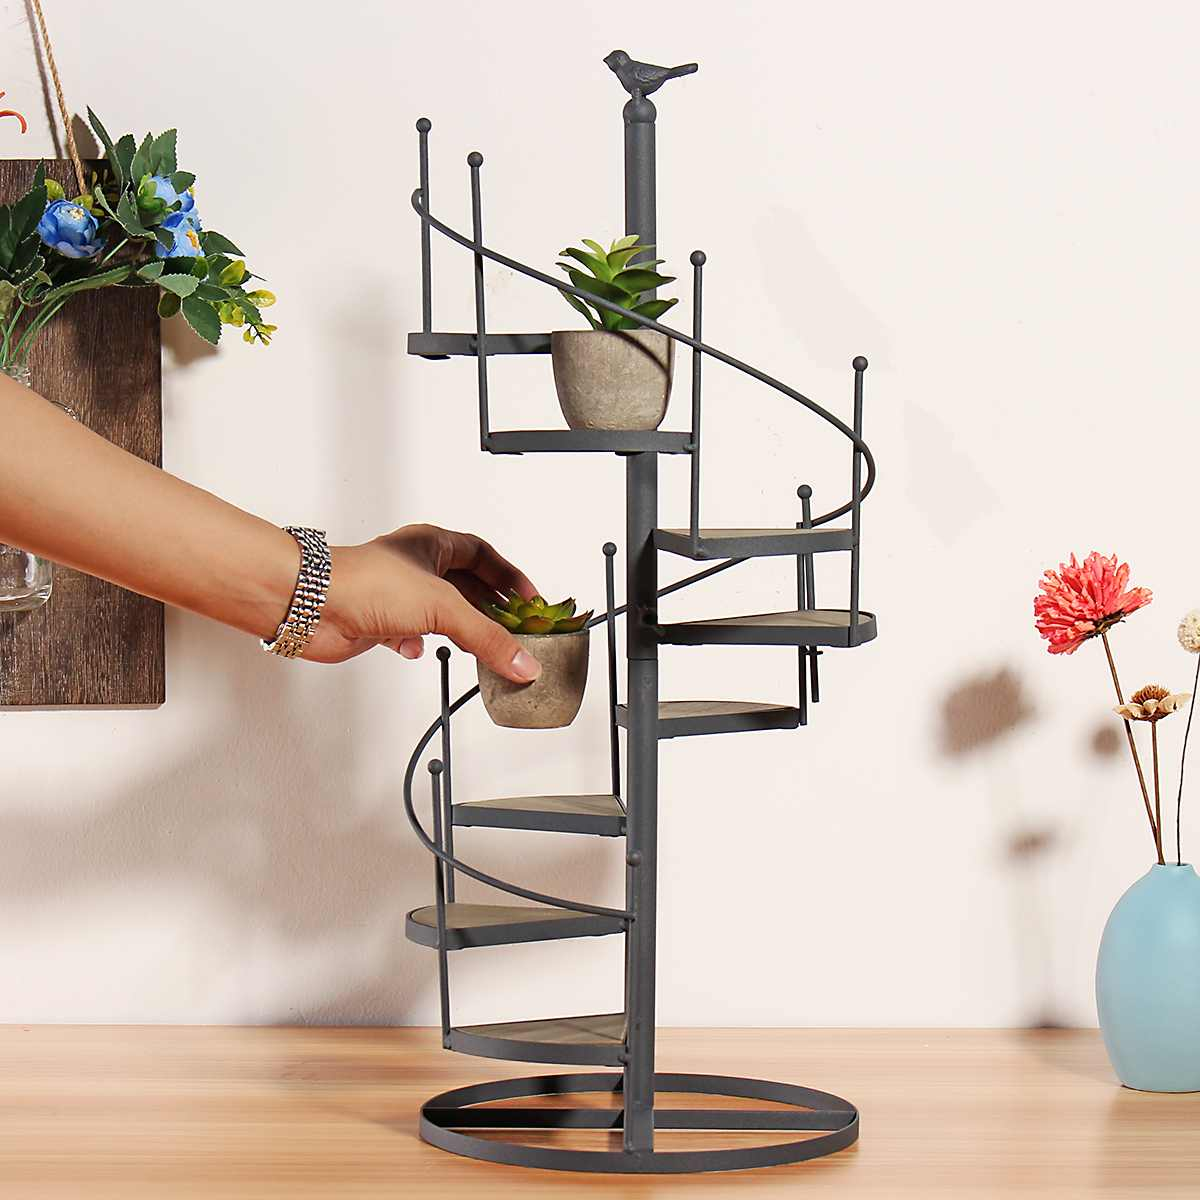 Modern Decorative Iron Plant Rack Stand Plants Succulent Shelf 8 Layer Stair Shape Desktop Garden Flower Stand + Wood Plate